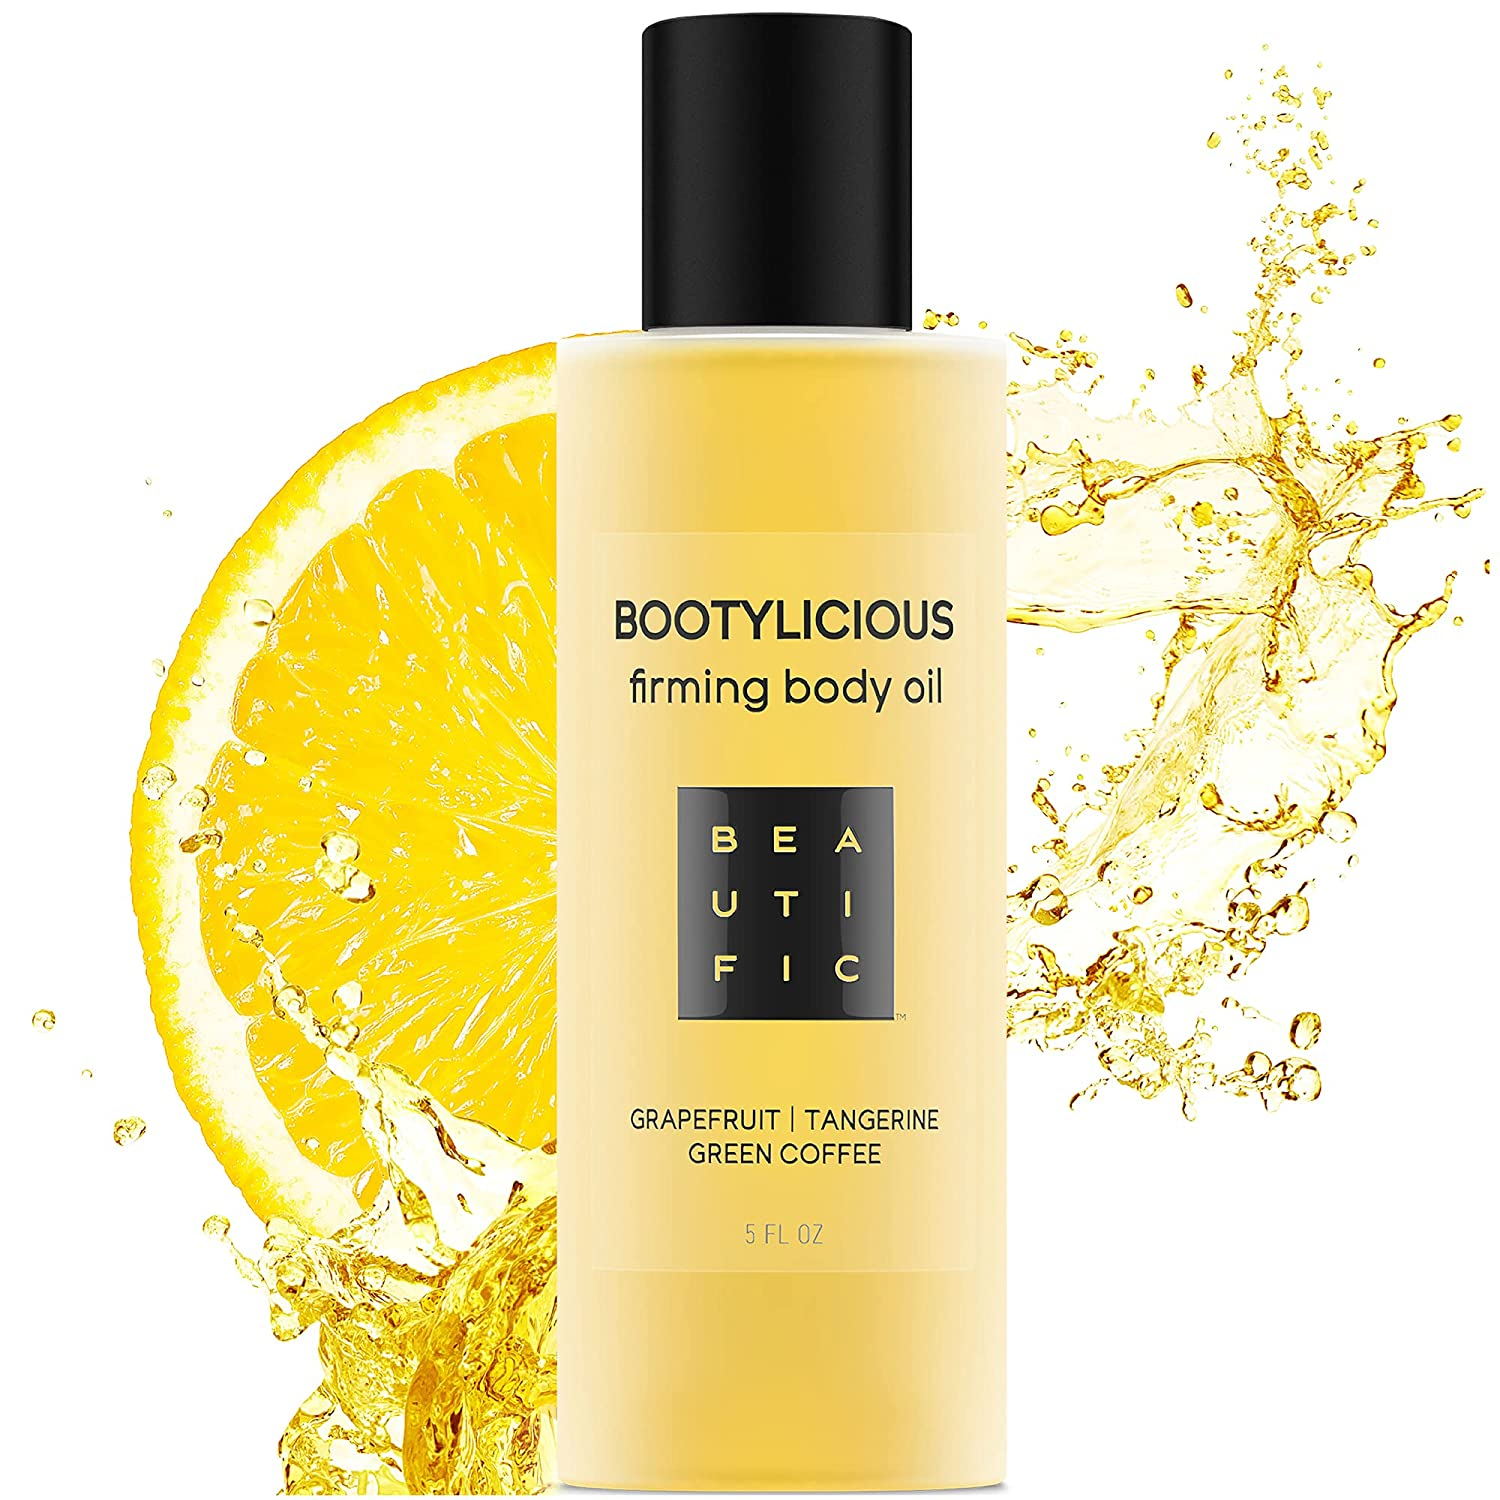 Buy BEAUTIFIC Natural Firming Body Oil   Bootylicious   Skin ...